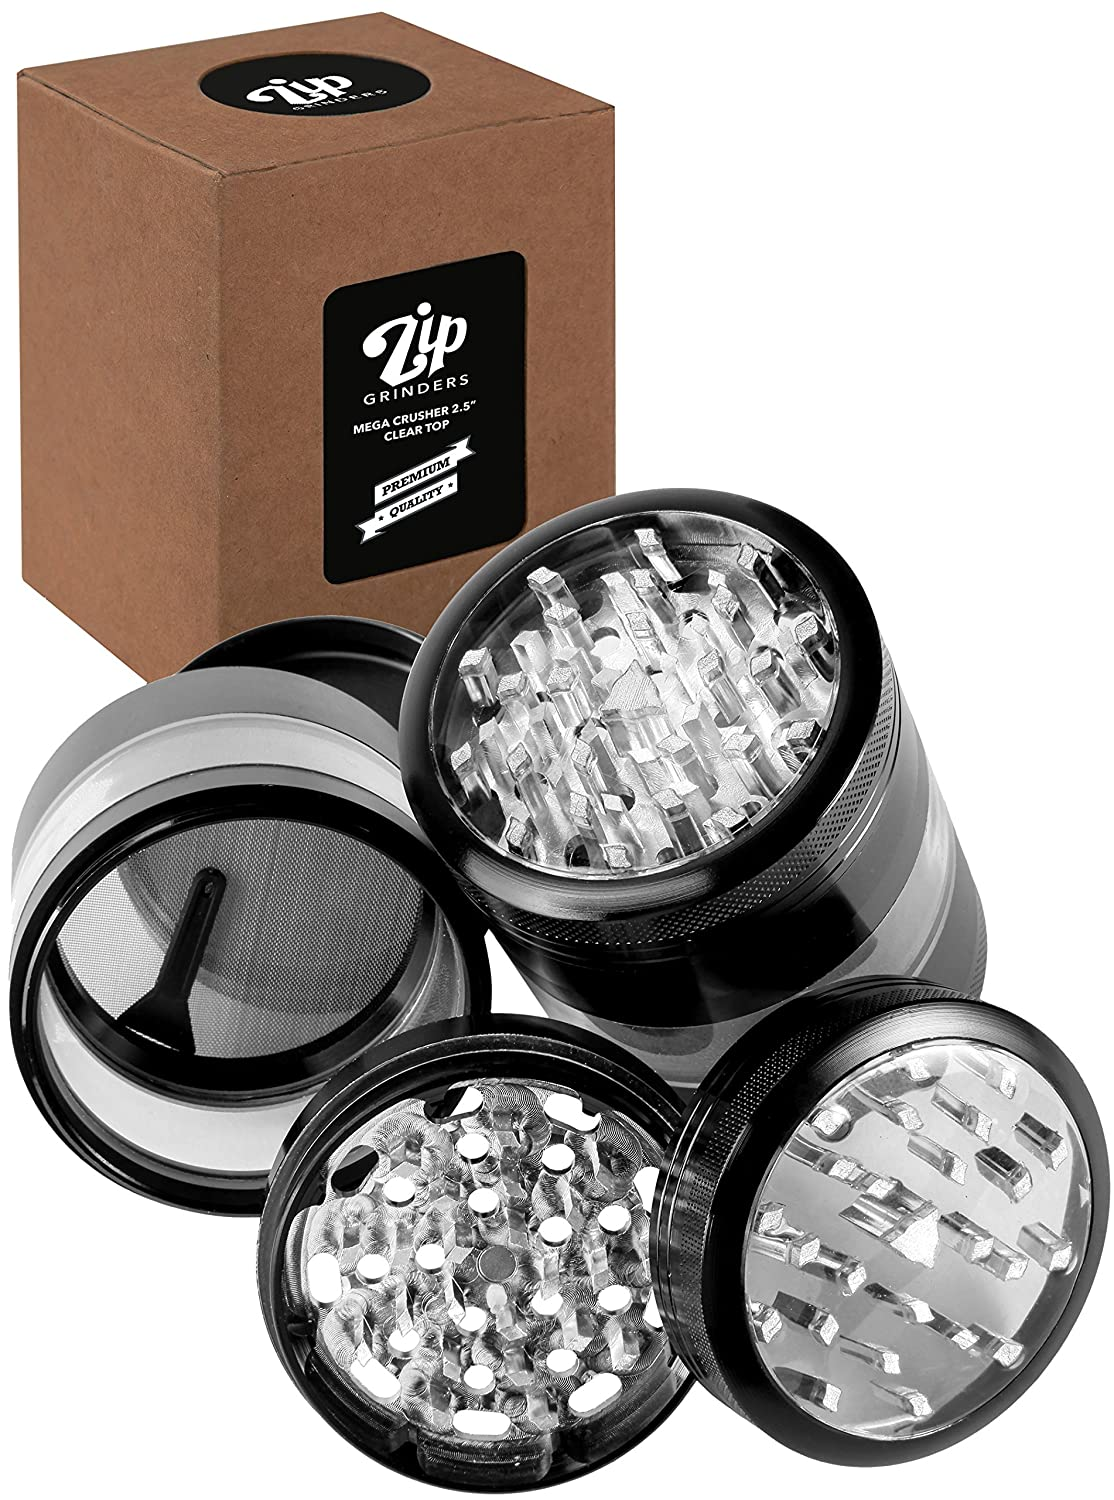 Zip Grinders - Large Herb Grinder - Four Piece with Pollen Catcher - 3.25 Inches Tall - Premium Grade Aluminum (2.5